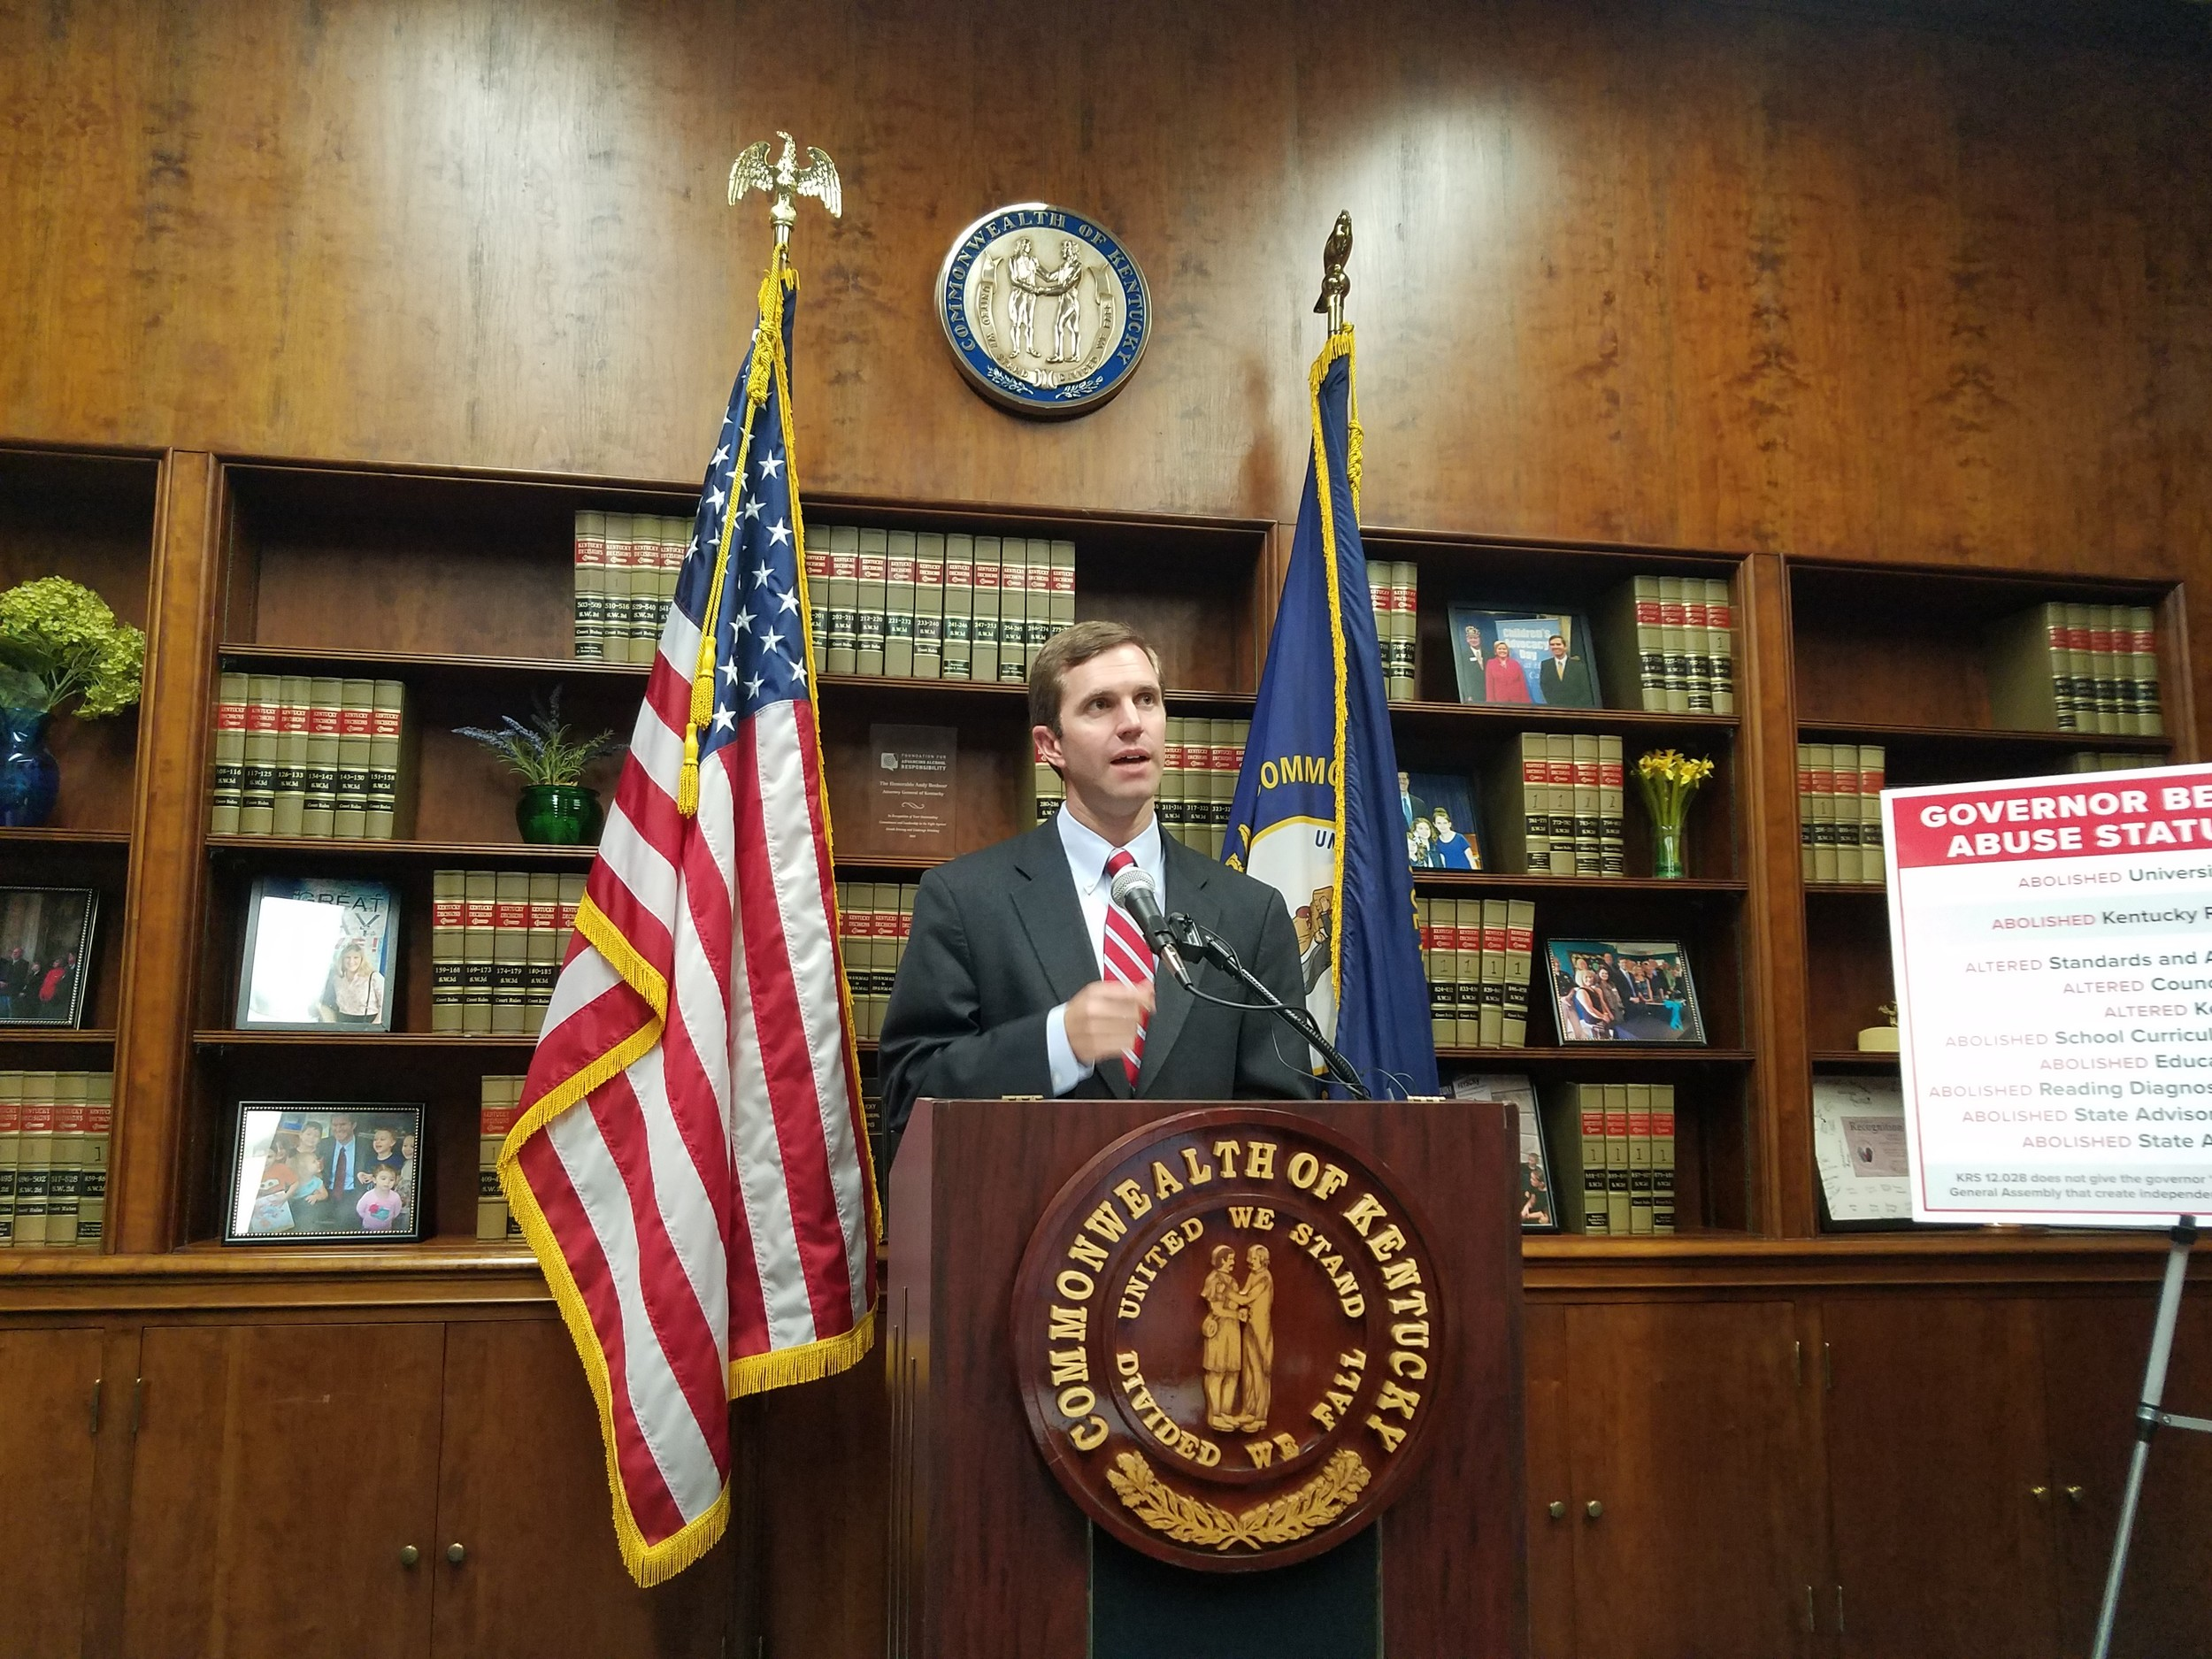 Beshear demands that Bevin rescind 'illegal' changes to education boards